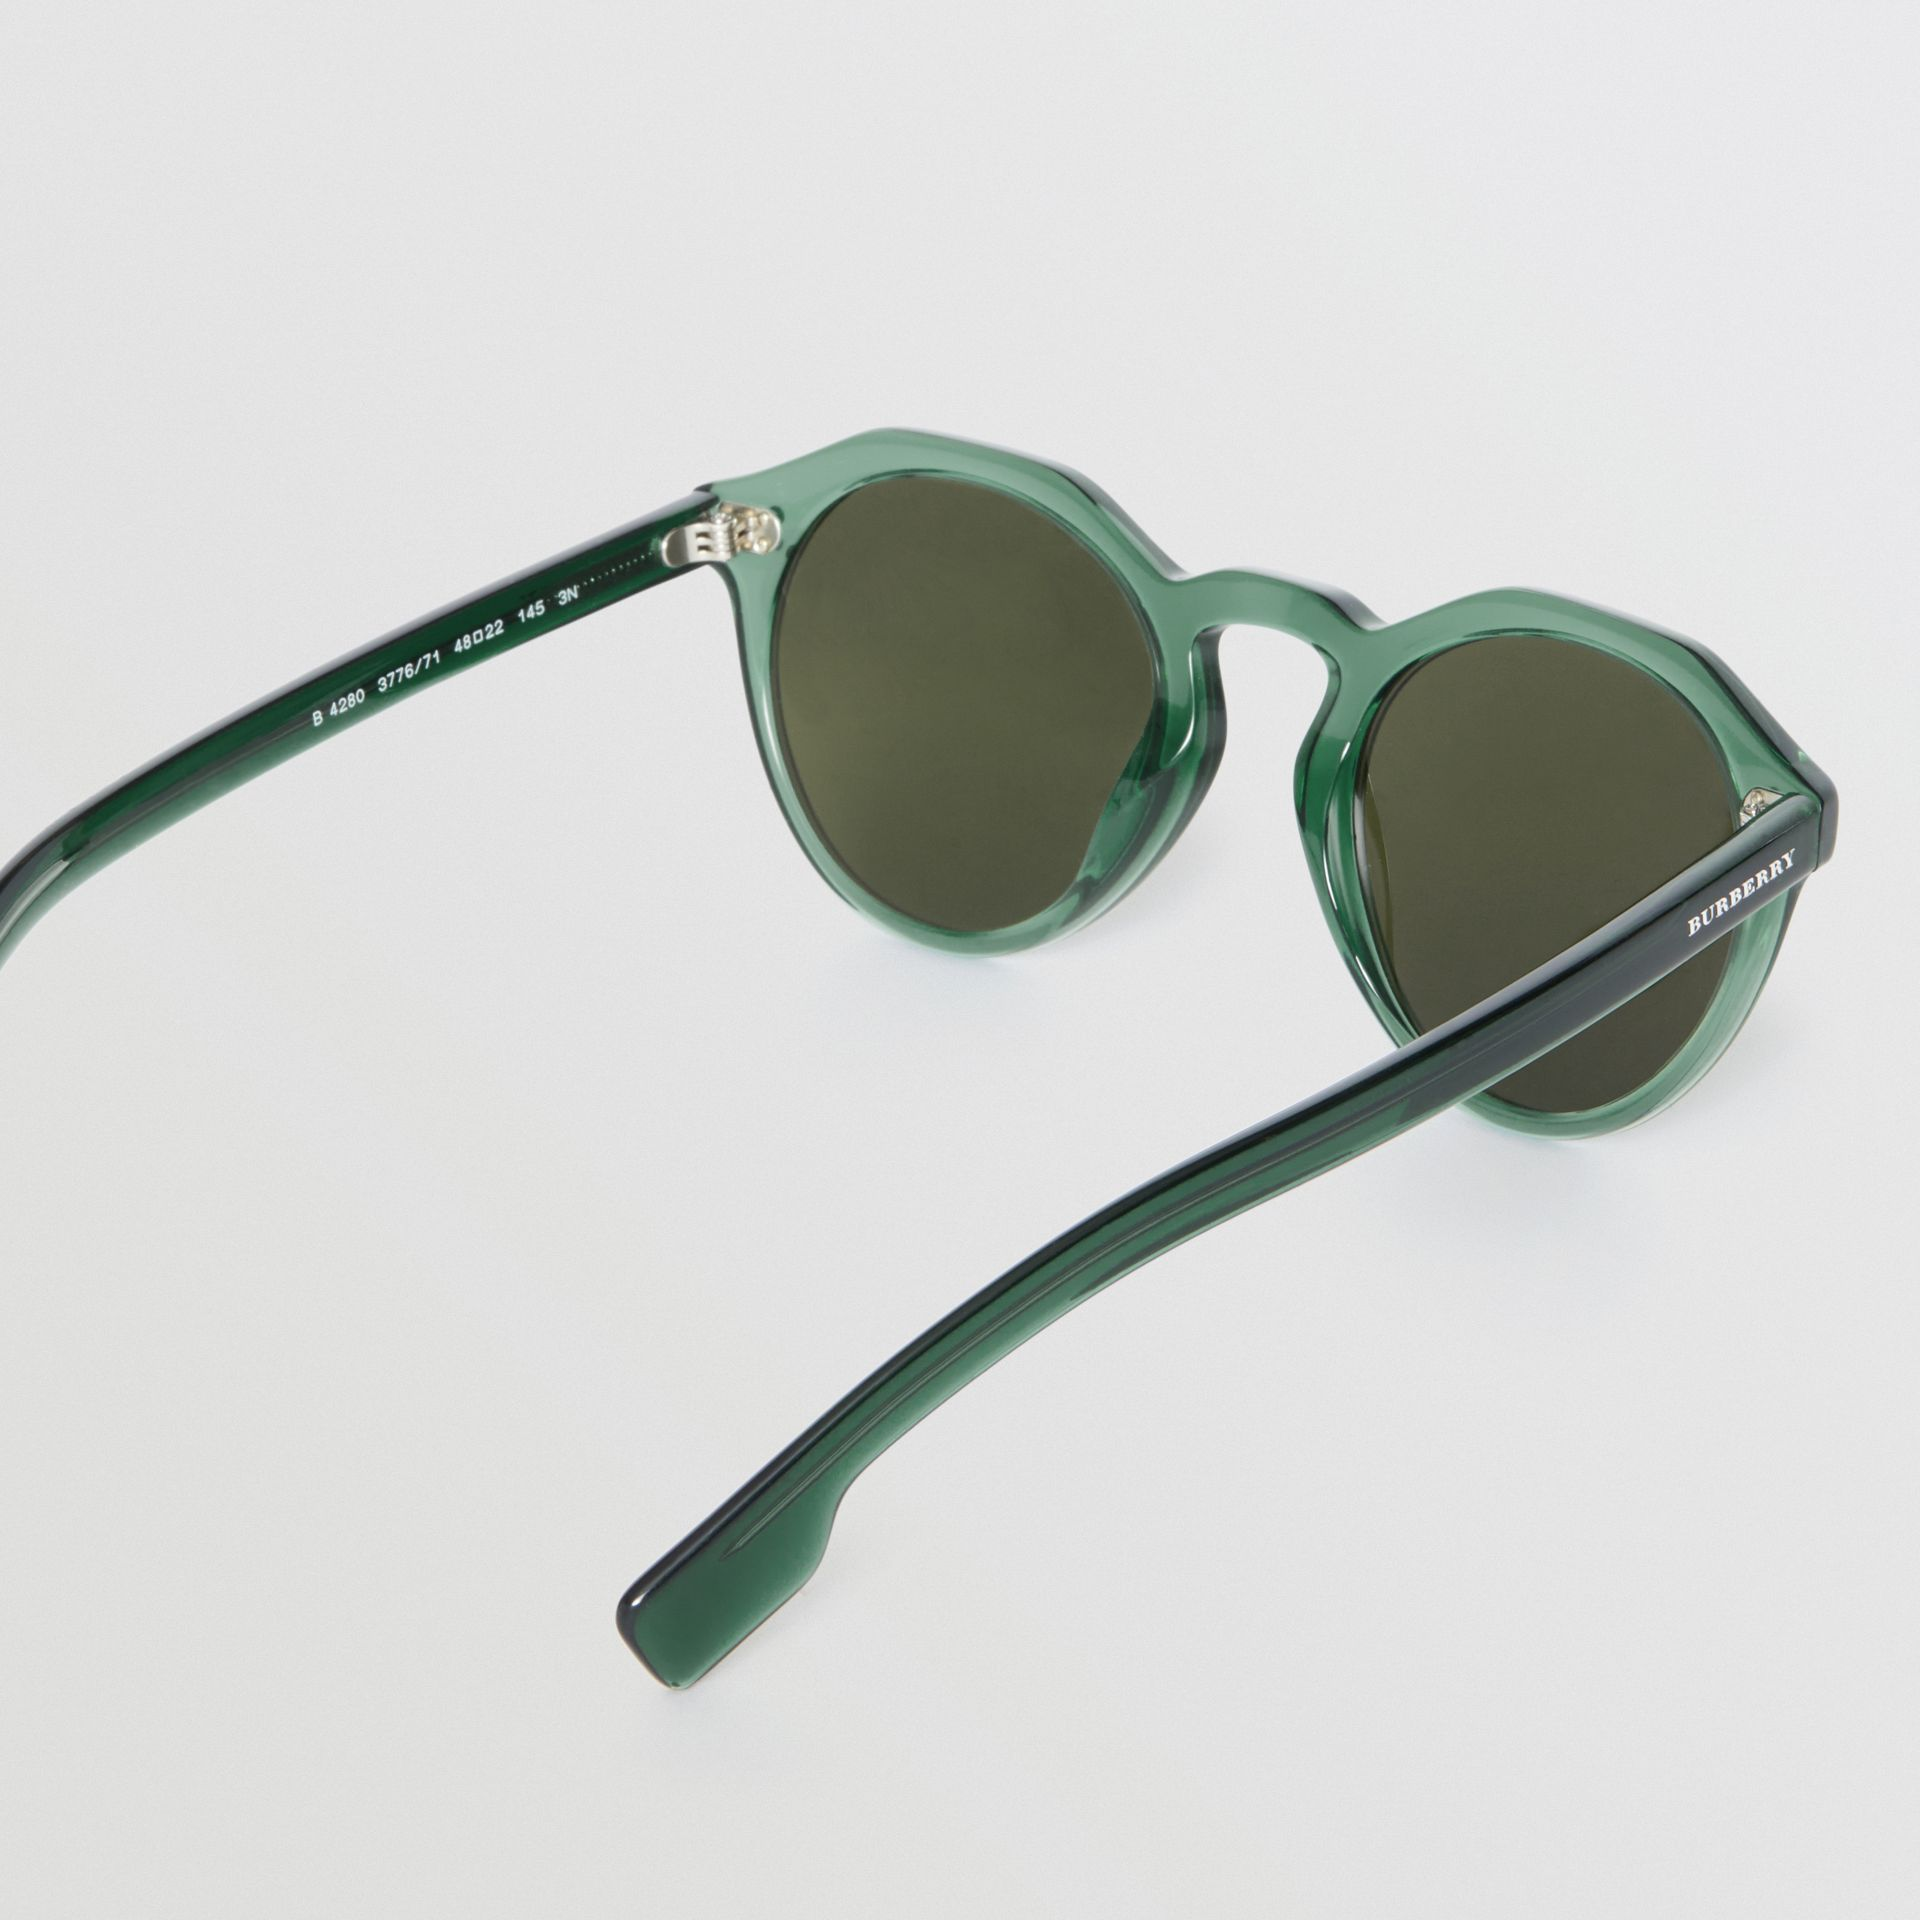 Keyhole Round Frame Sunglasses in Green - Men | Burberry United Kingdom - gallery image 4